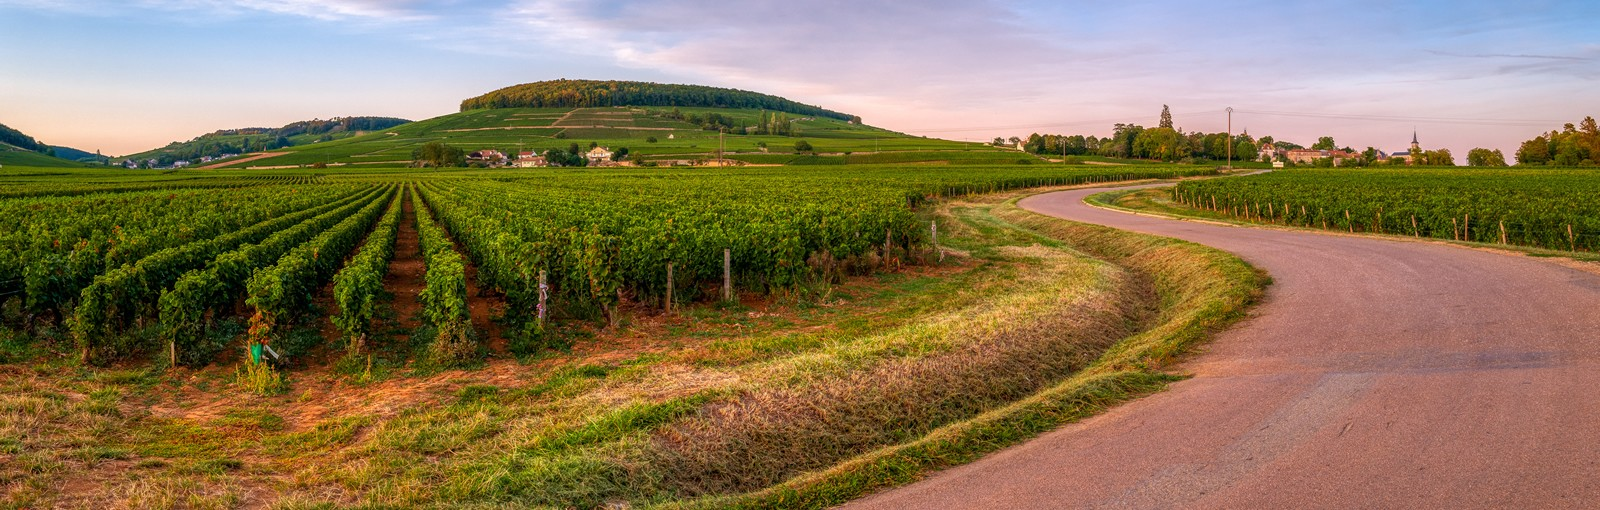 Tours 3 Nights in Burgundy: Sensations, Exploration, Castles and Wines! - Burgundy - Day tours from Paris